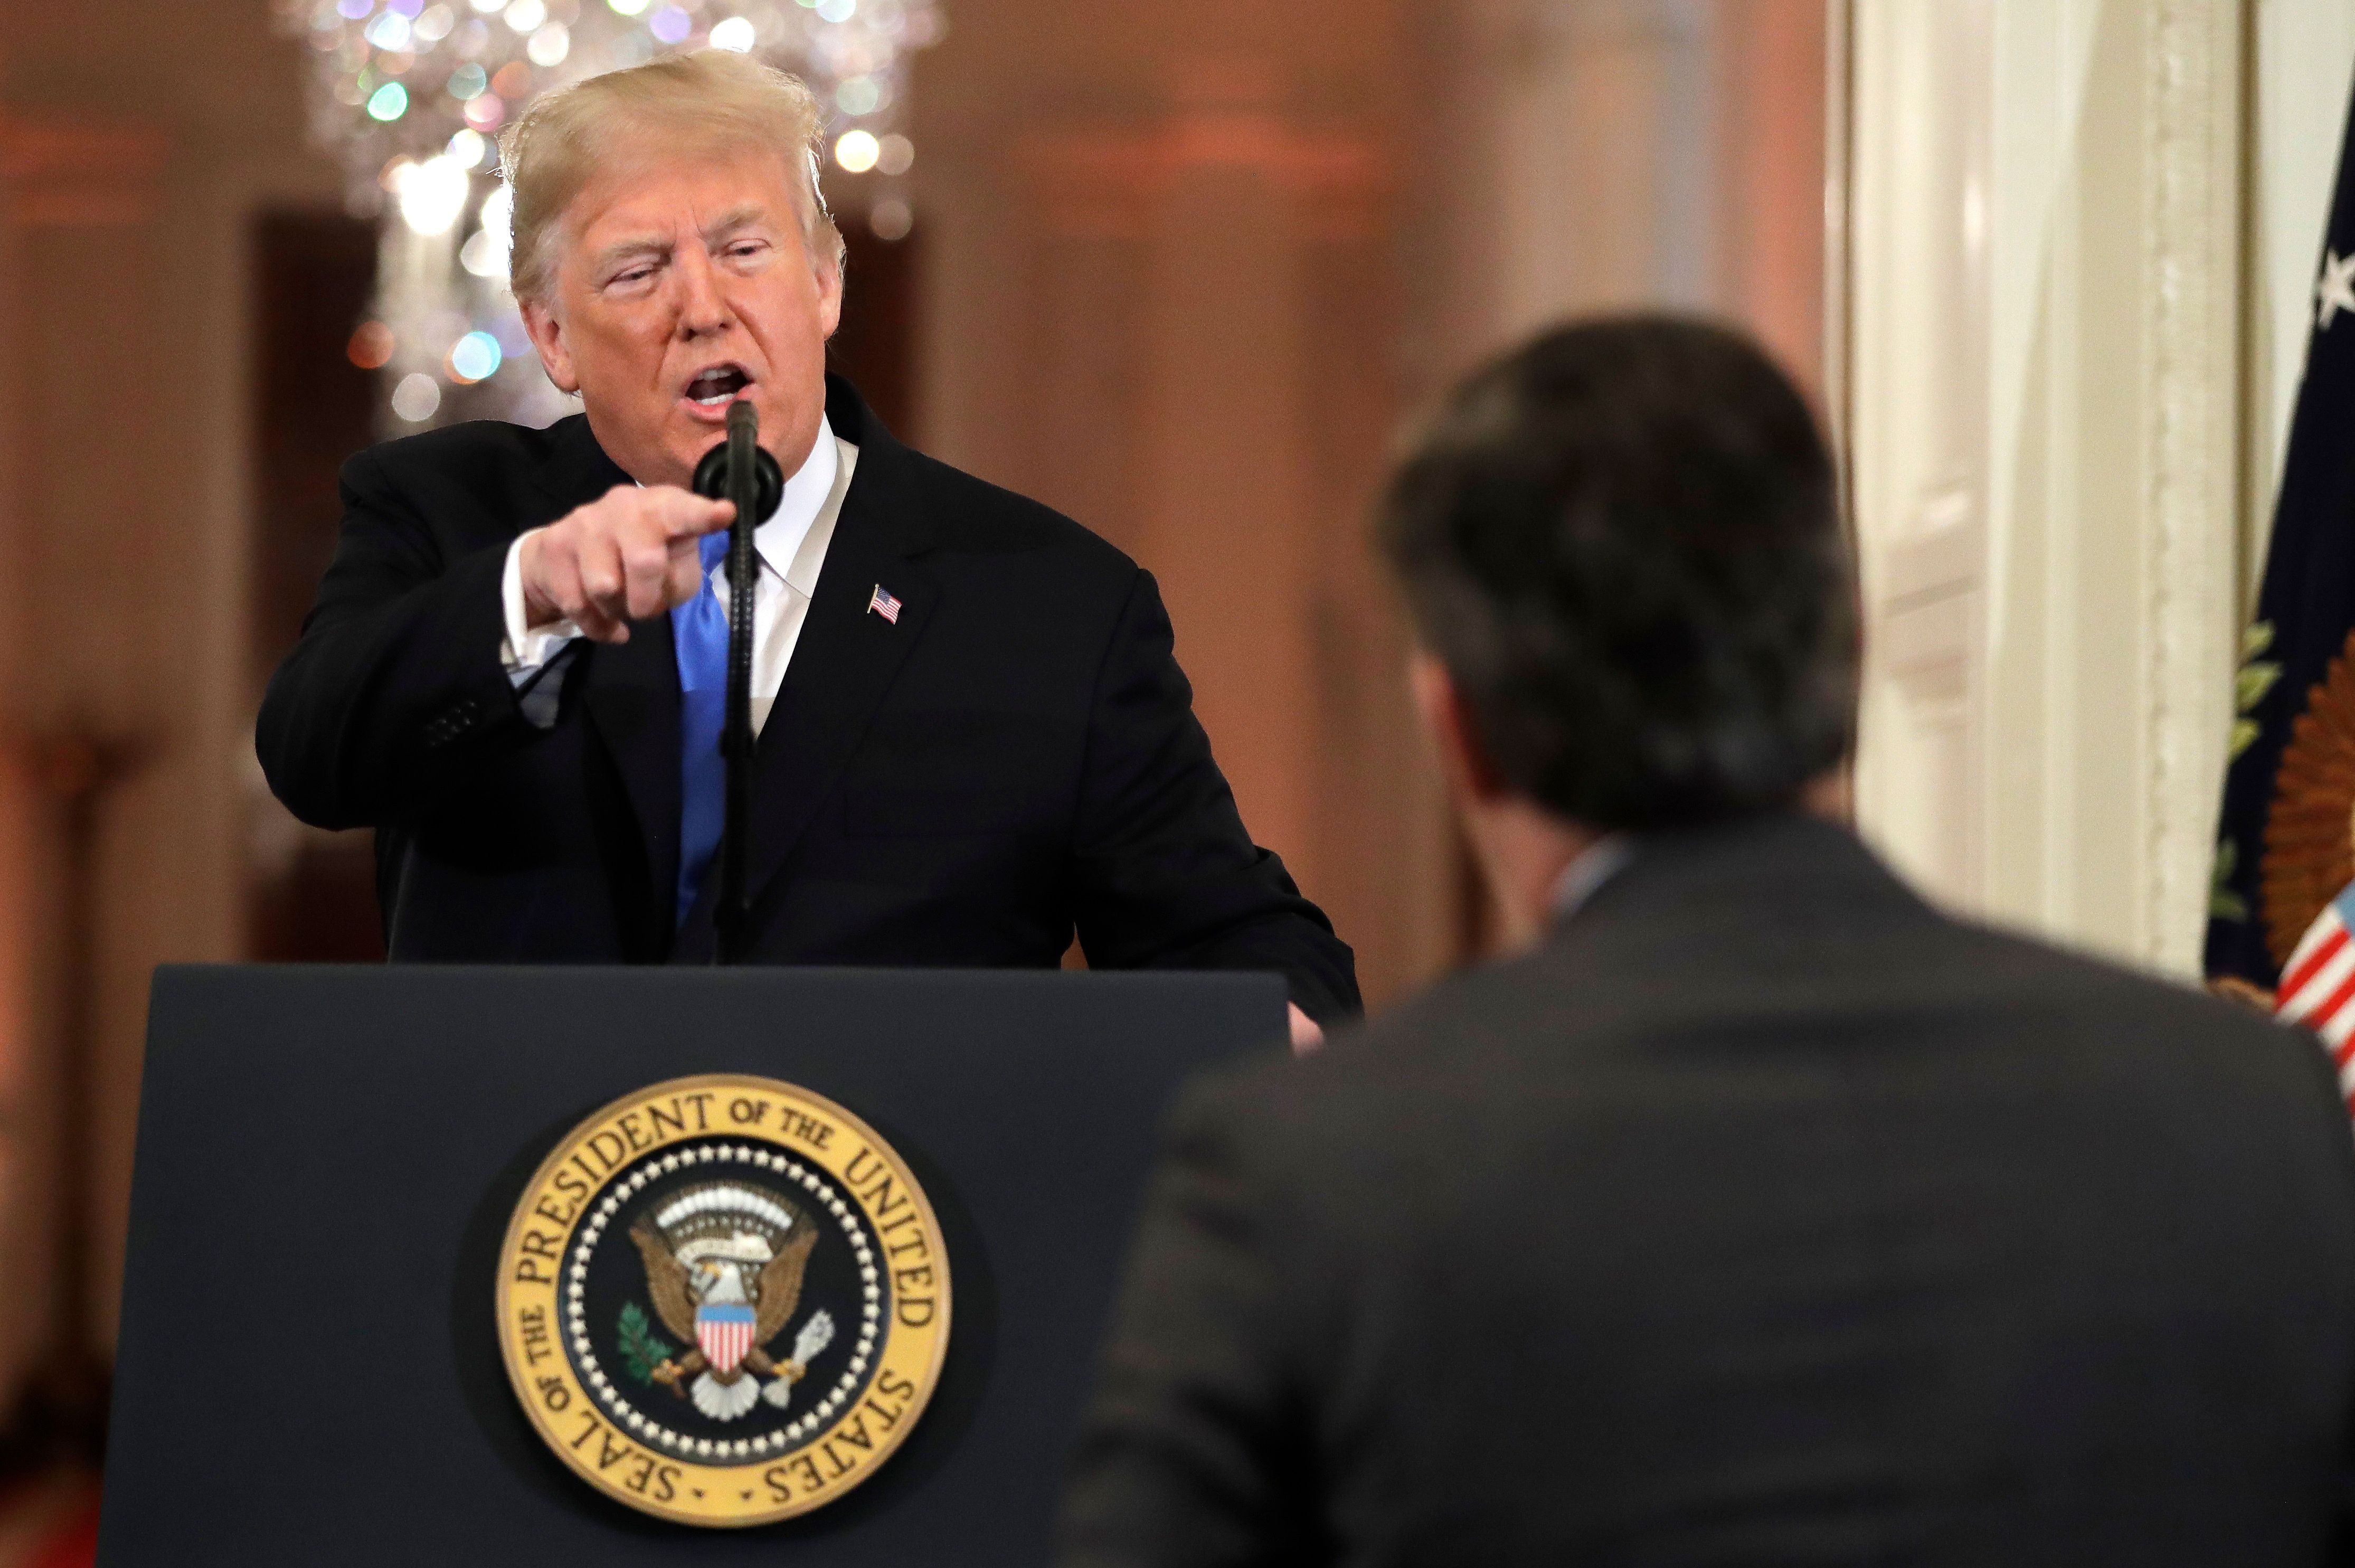 President Donald Trump points to CNN's Jim Acosta as he speaks during a news conference in the East Room of the White House l